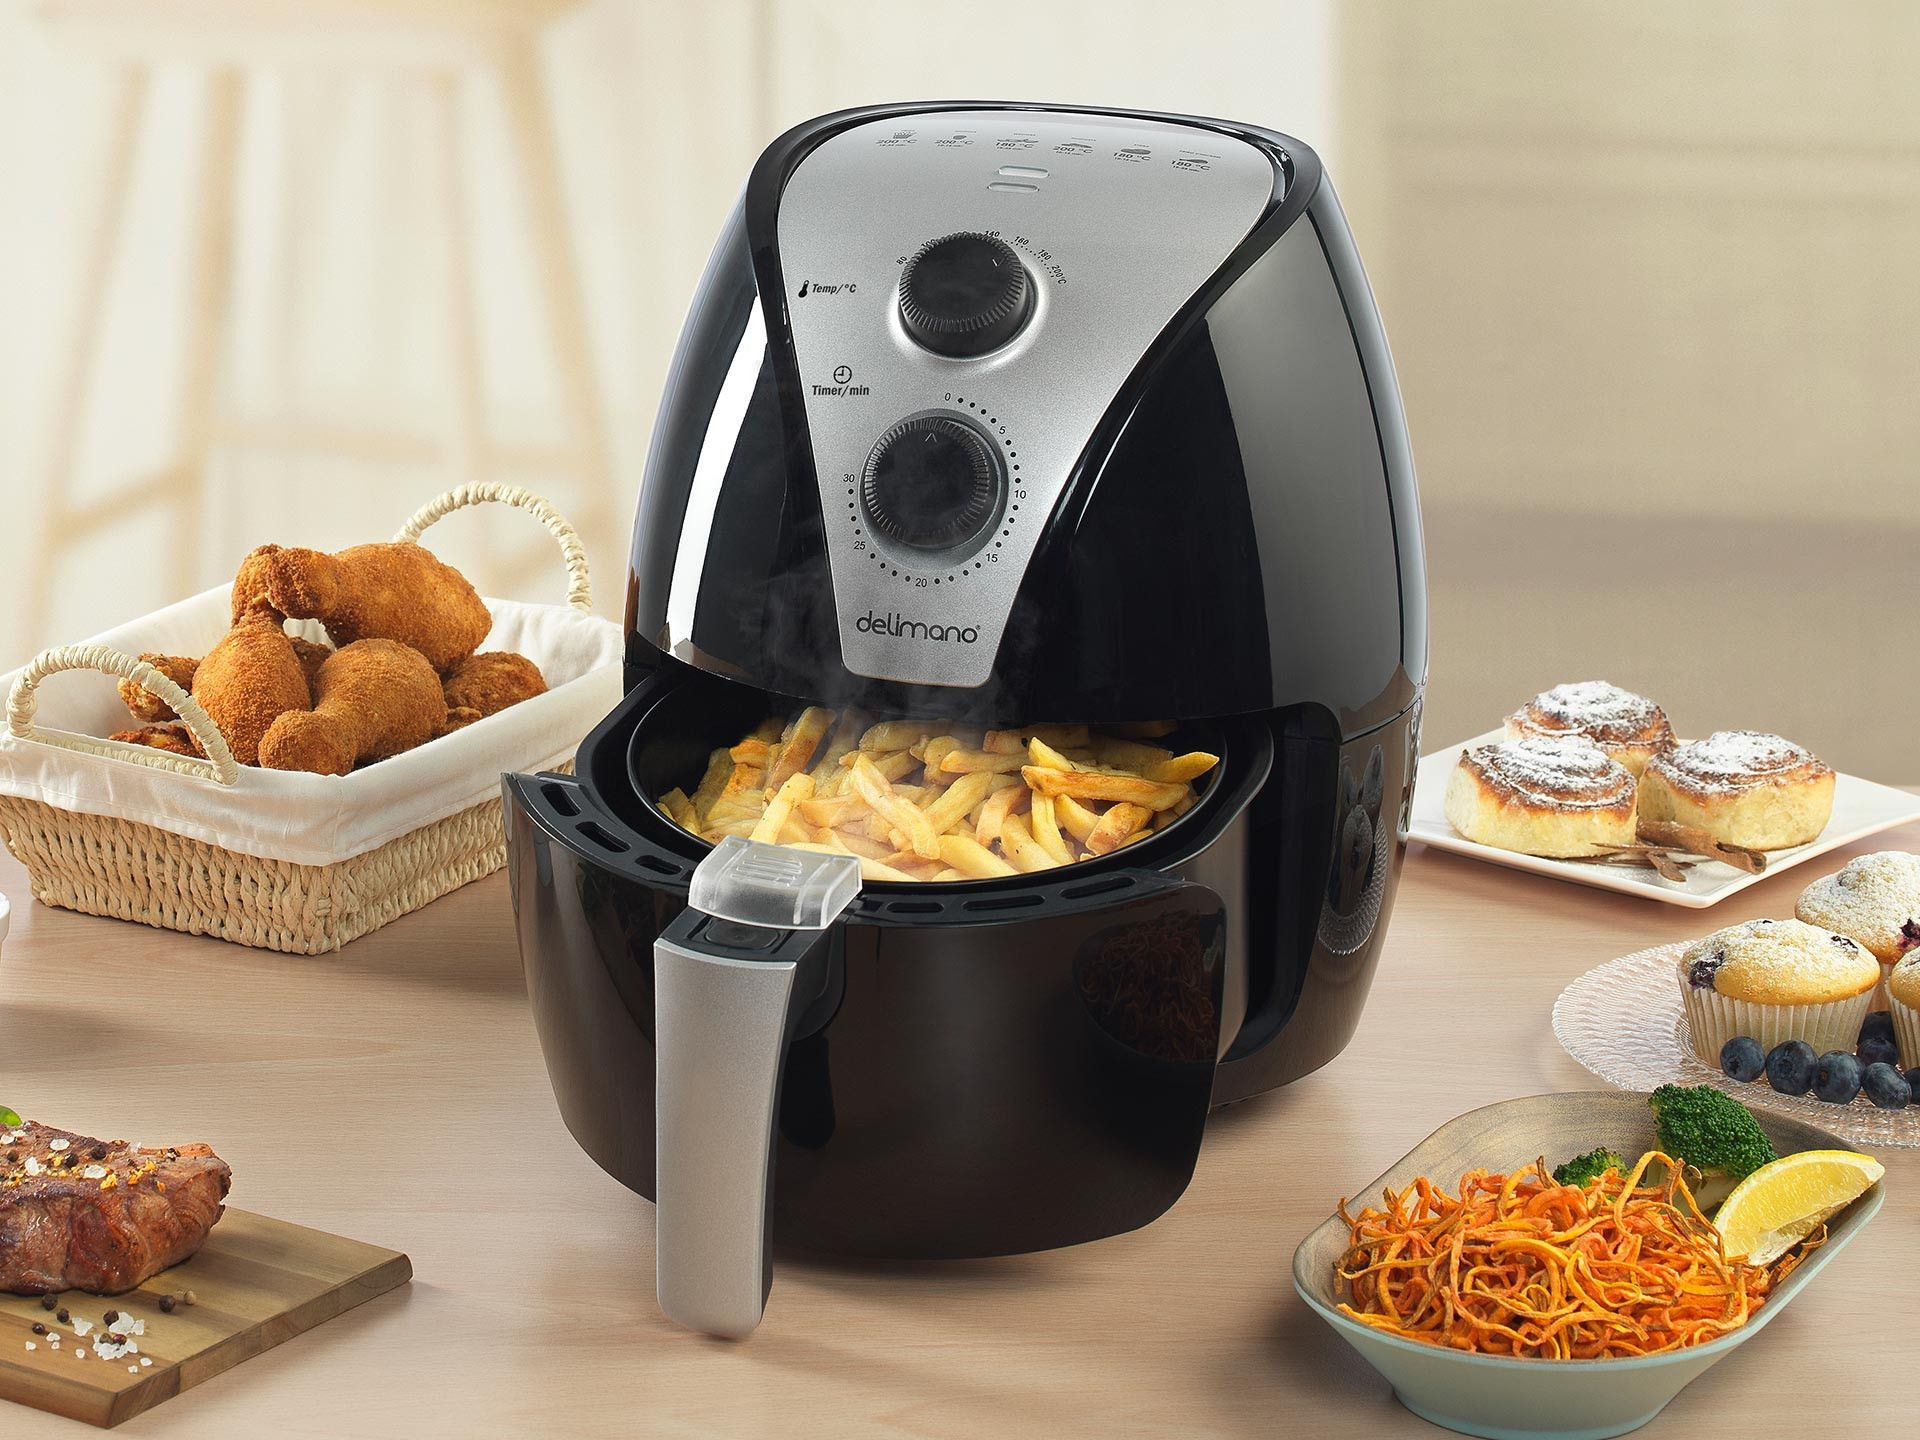 Lovely Cooking with Air Fryer in 2020 Air fryer, Cooking